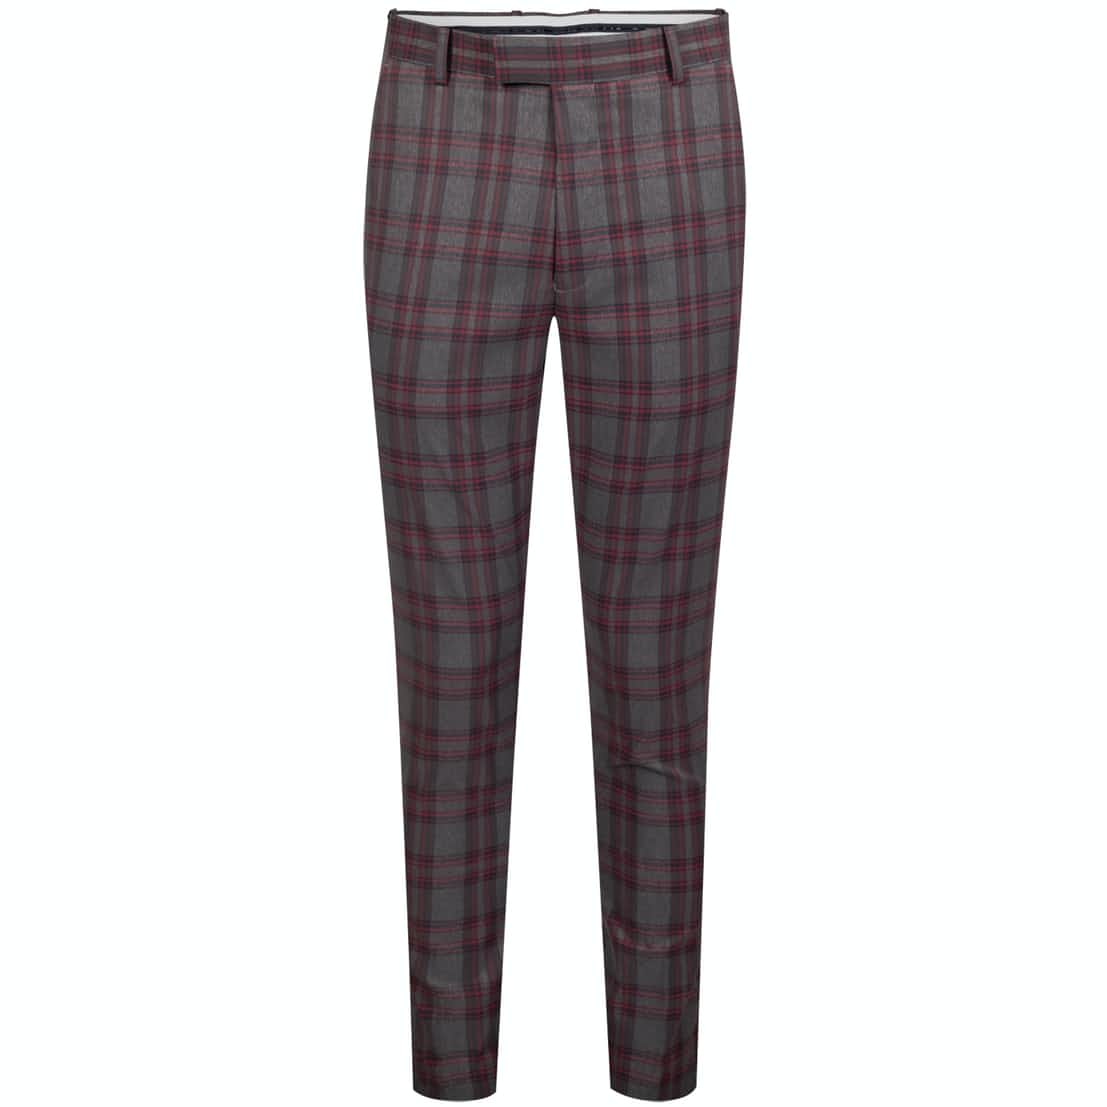 School Boy Trousers Charcoal/Cabernet - AW19